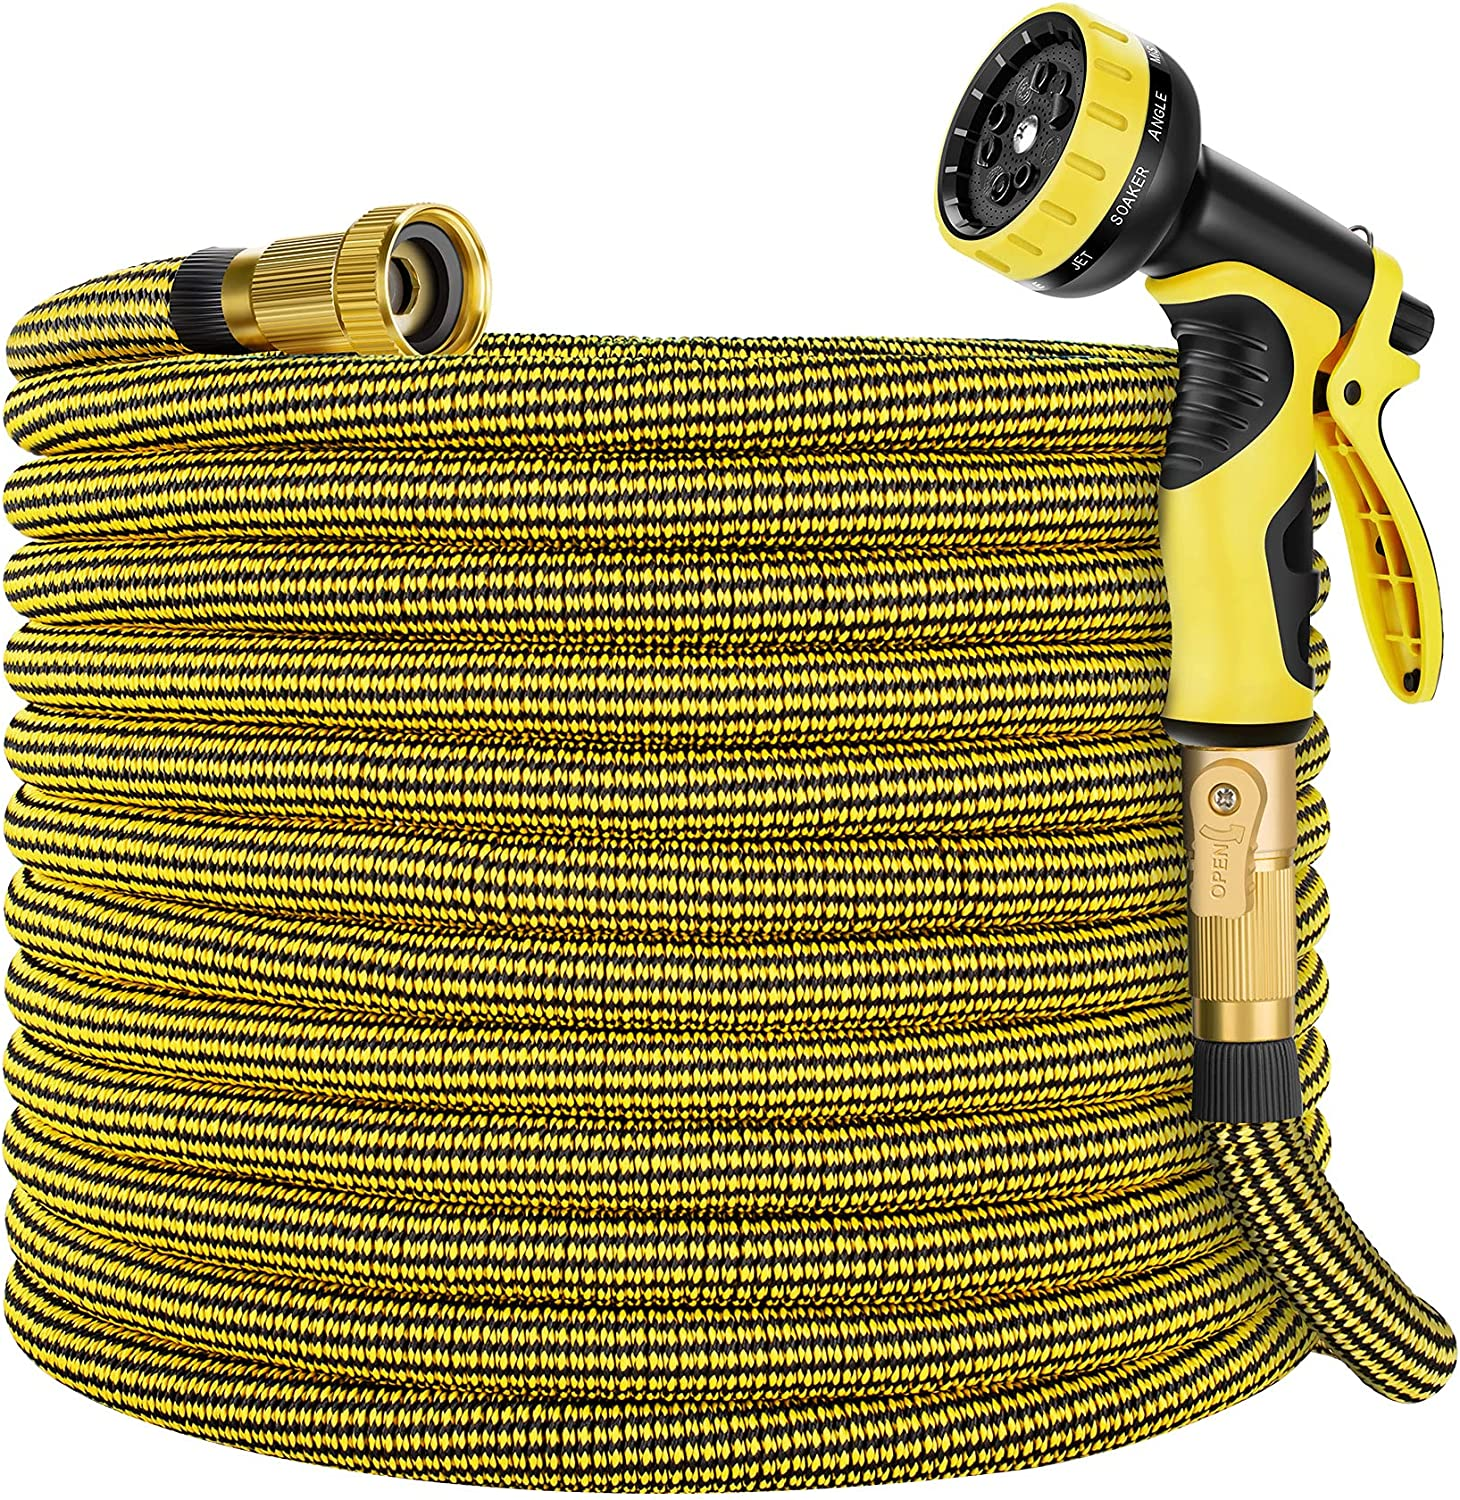 Zoflaro Garden Hose 50ft, Expandable Water Hose 50 feet with 10 Function Spray Nozzle, Extra Strength 3750D, Durable 4-Layers Latex Flexible Expandable Hose with 3/4